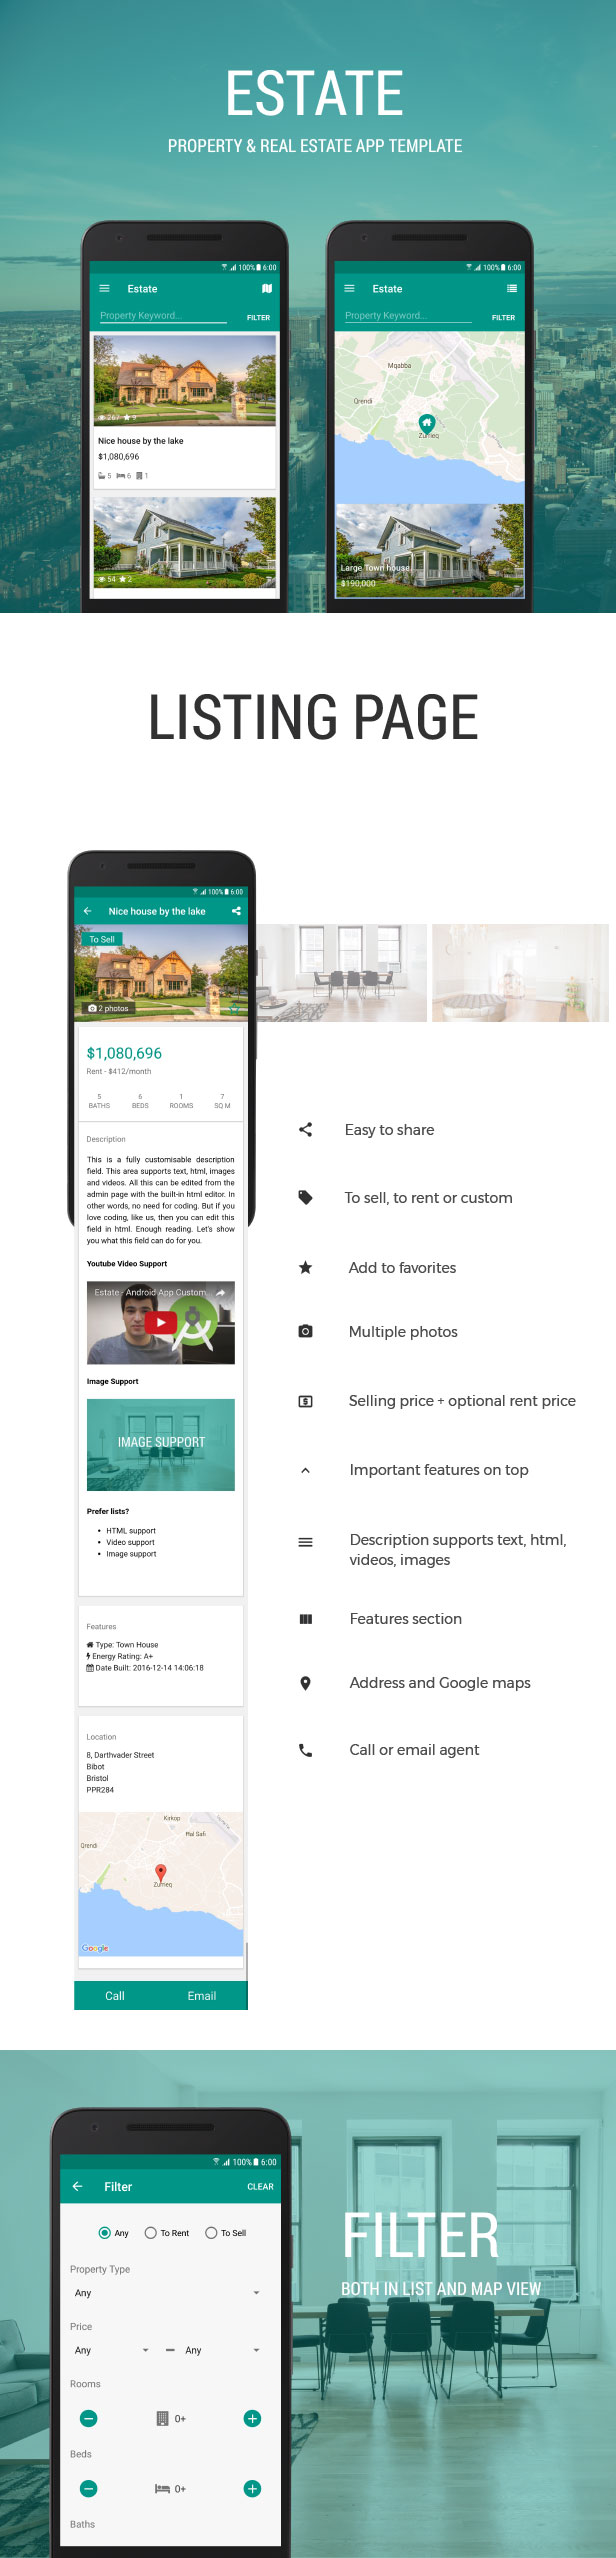 Estate - A Property Real Estate App Template Download